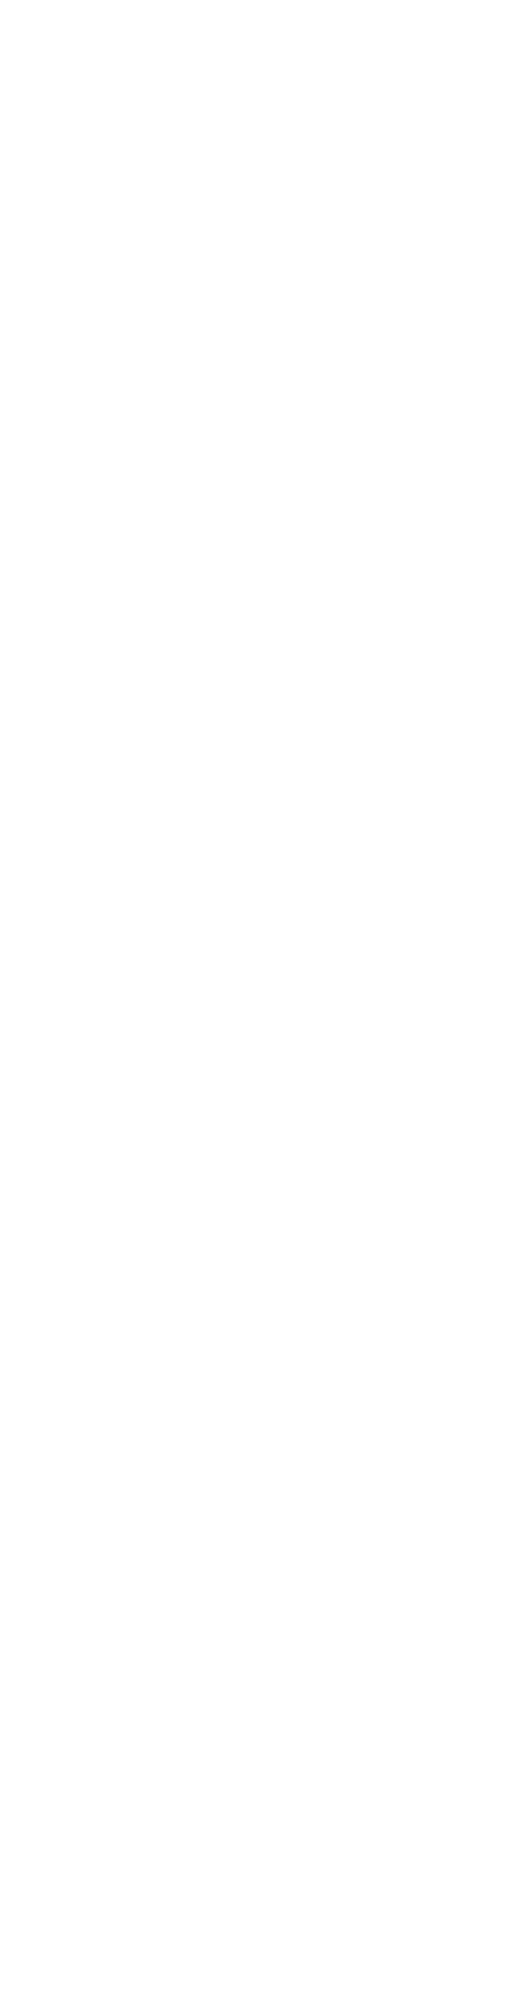 forests fins & footprints tree